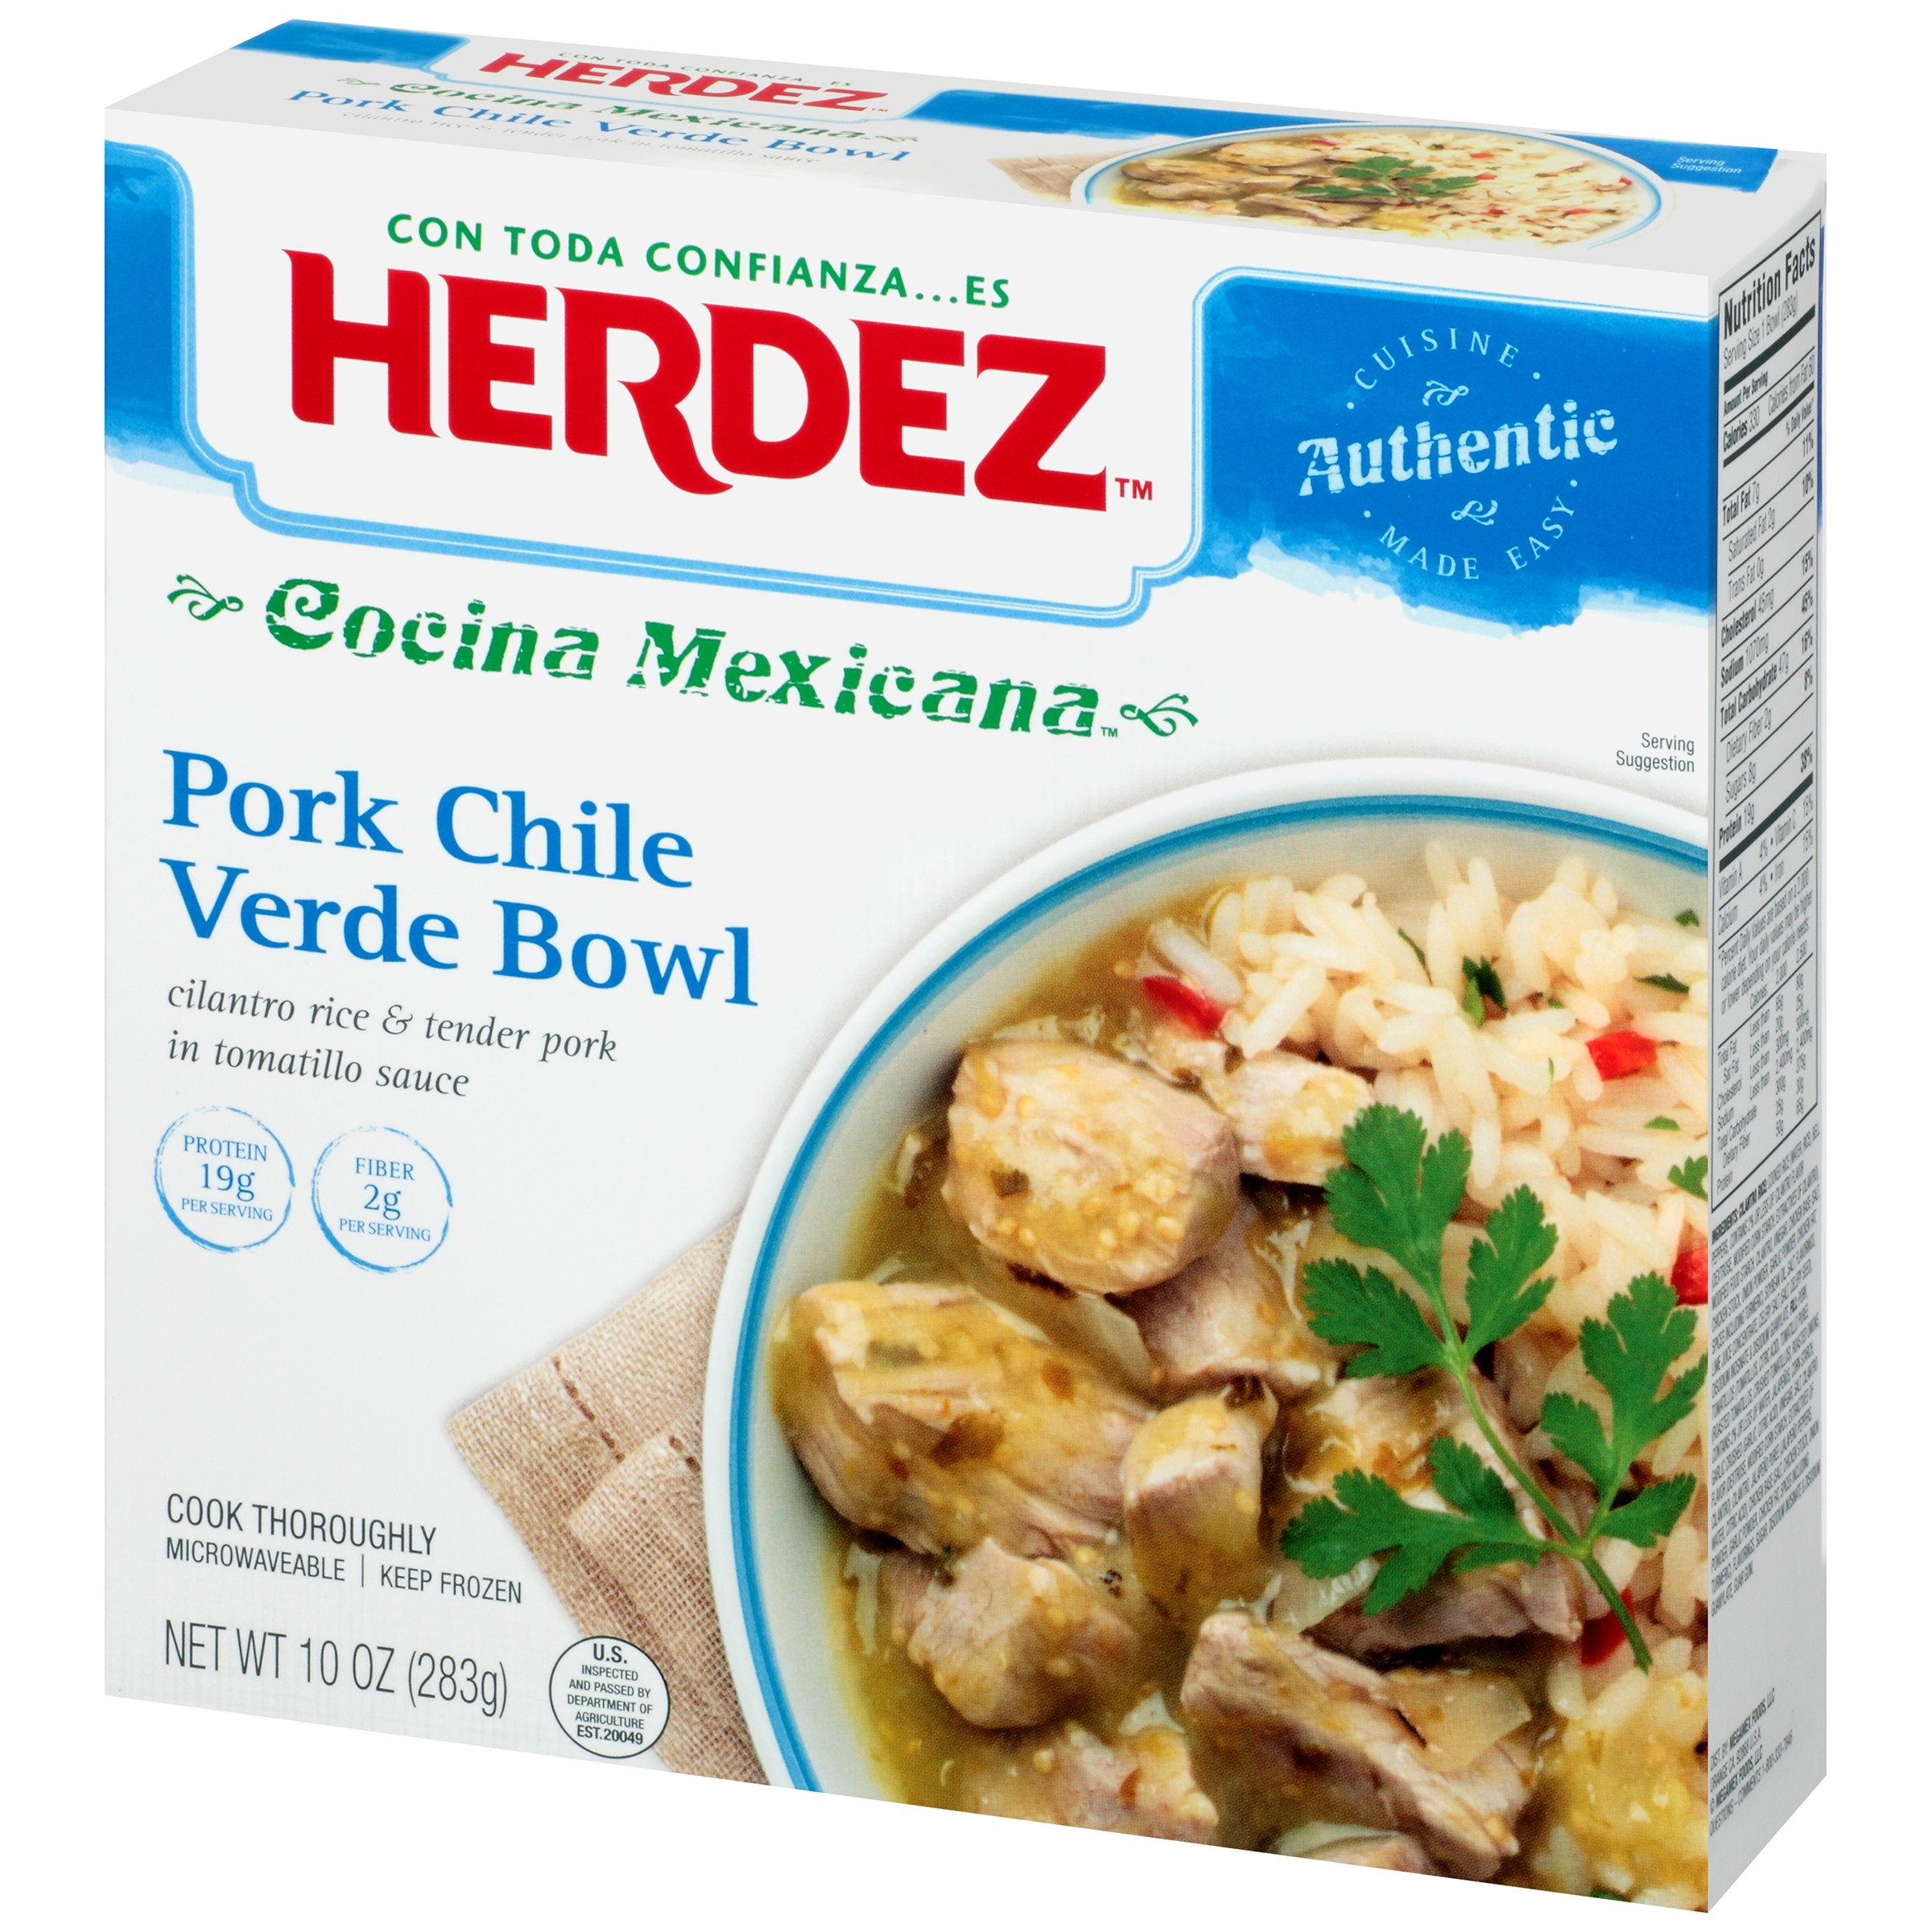 Cocina Verde Recipes Herdez Cocina Mexicana Pork Chile Verde Bowl 10 Oz Box